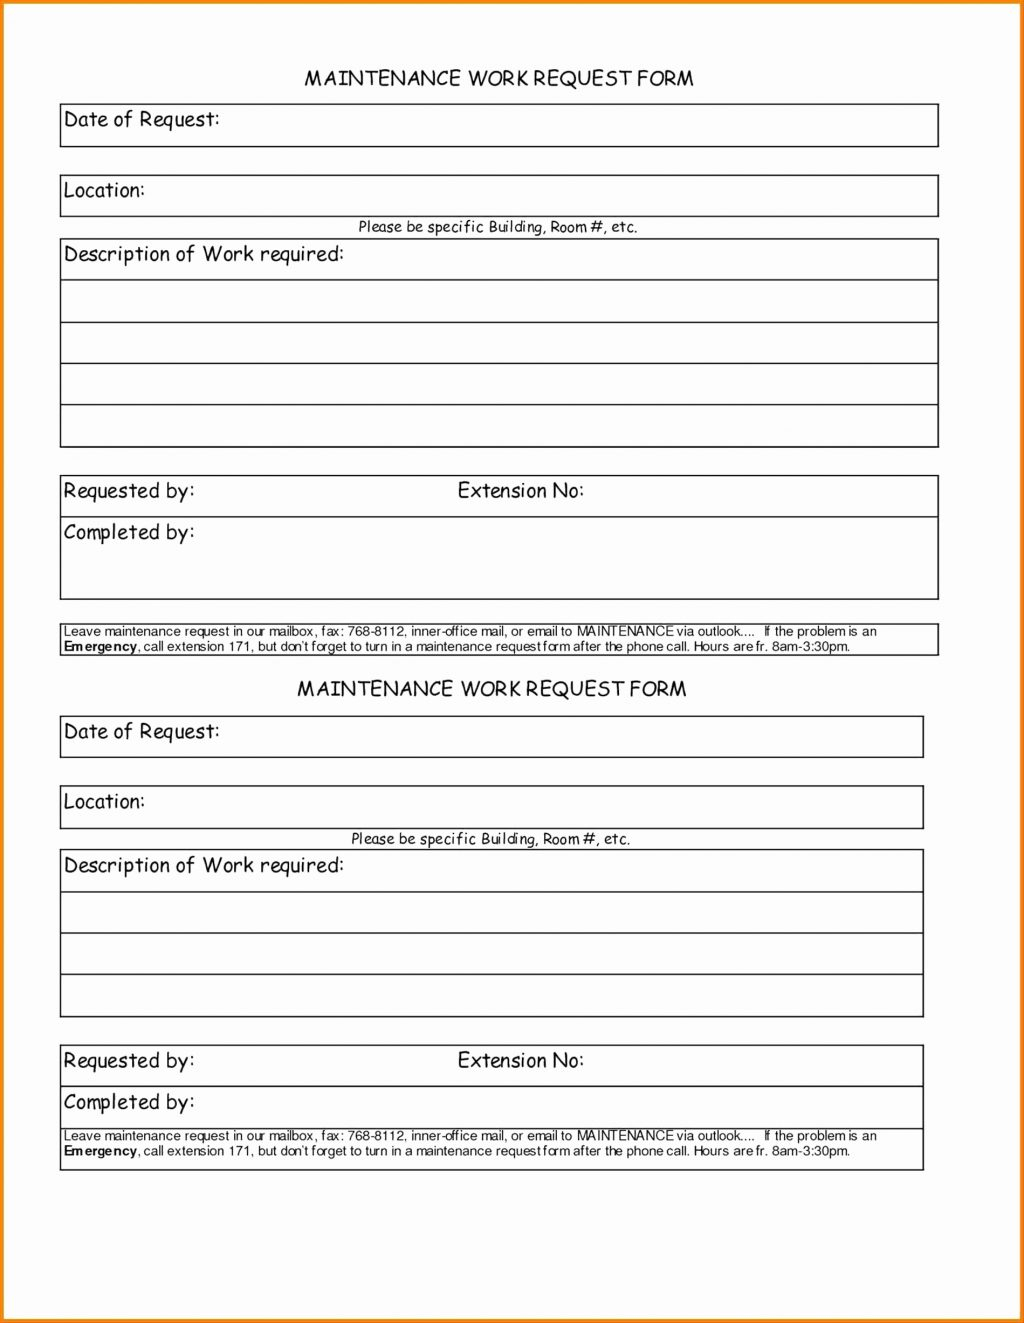 Farm Equipment Maintenance Log Spreadsheet Intended For Maintenance Report Form Free Templates In Pdf Word Excel Download